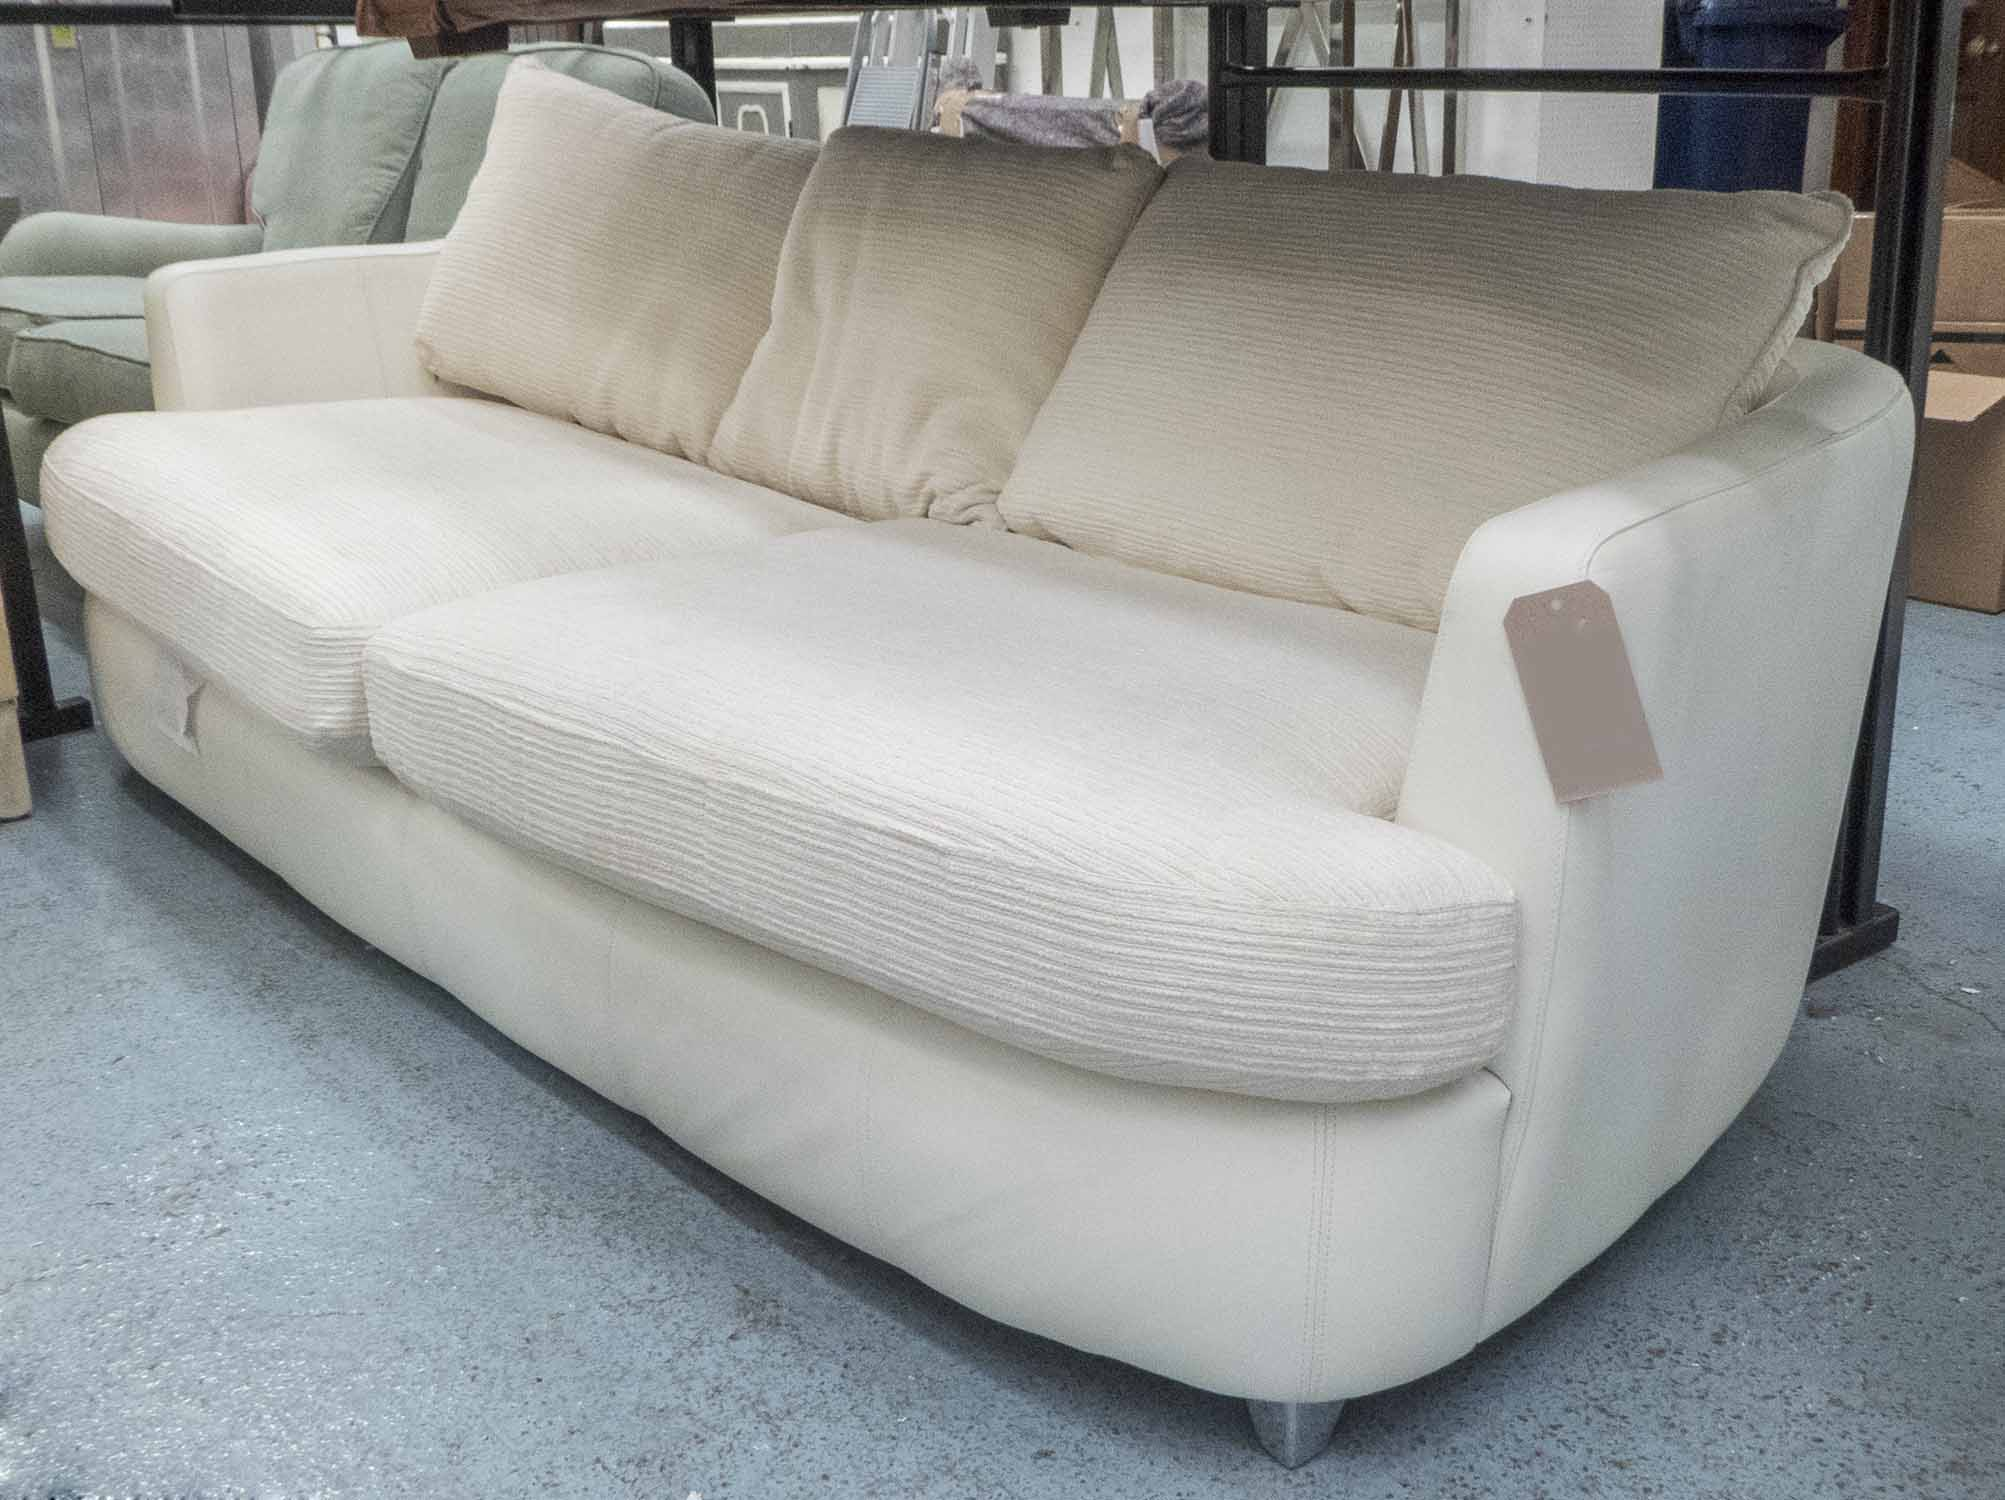 Lot 8 - SOFA, large two seater, in cream leather and cream fabric on metal supports, 231 cm long.